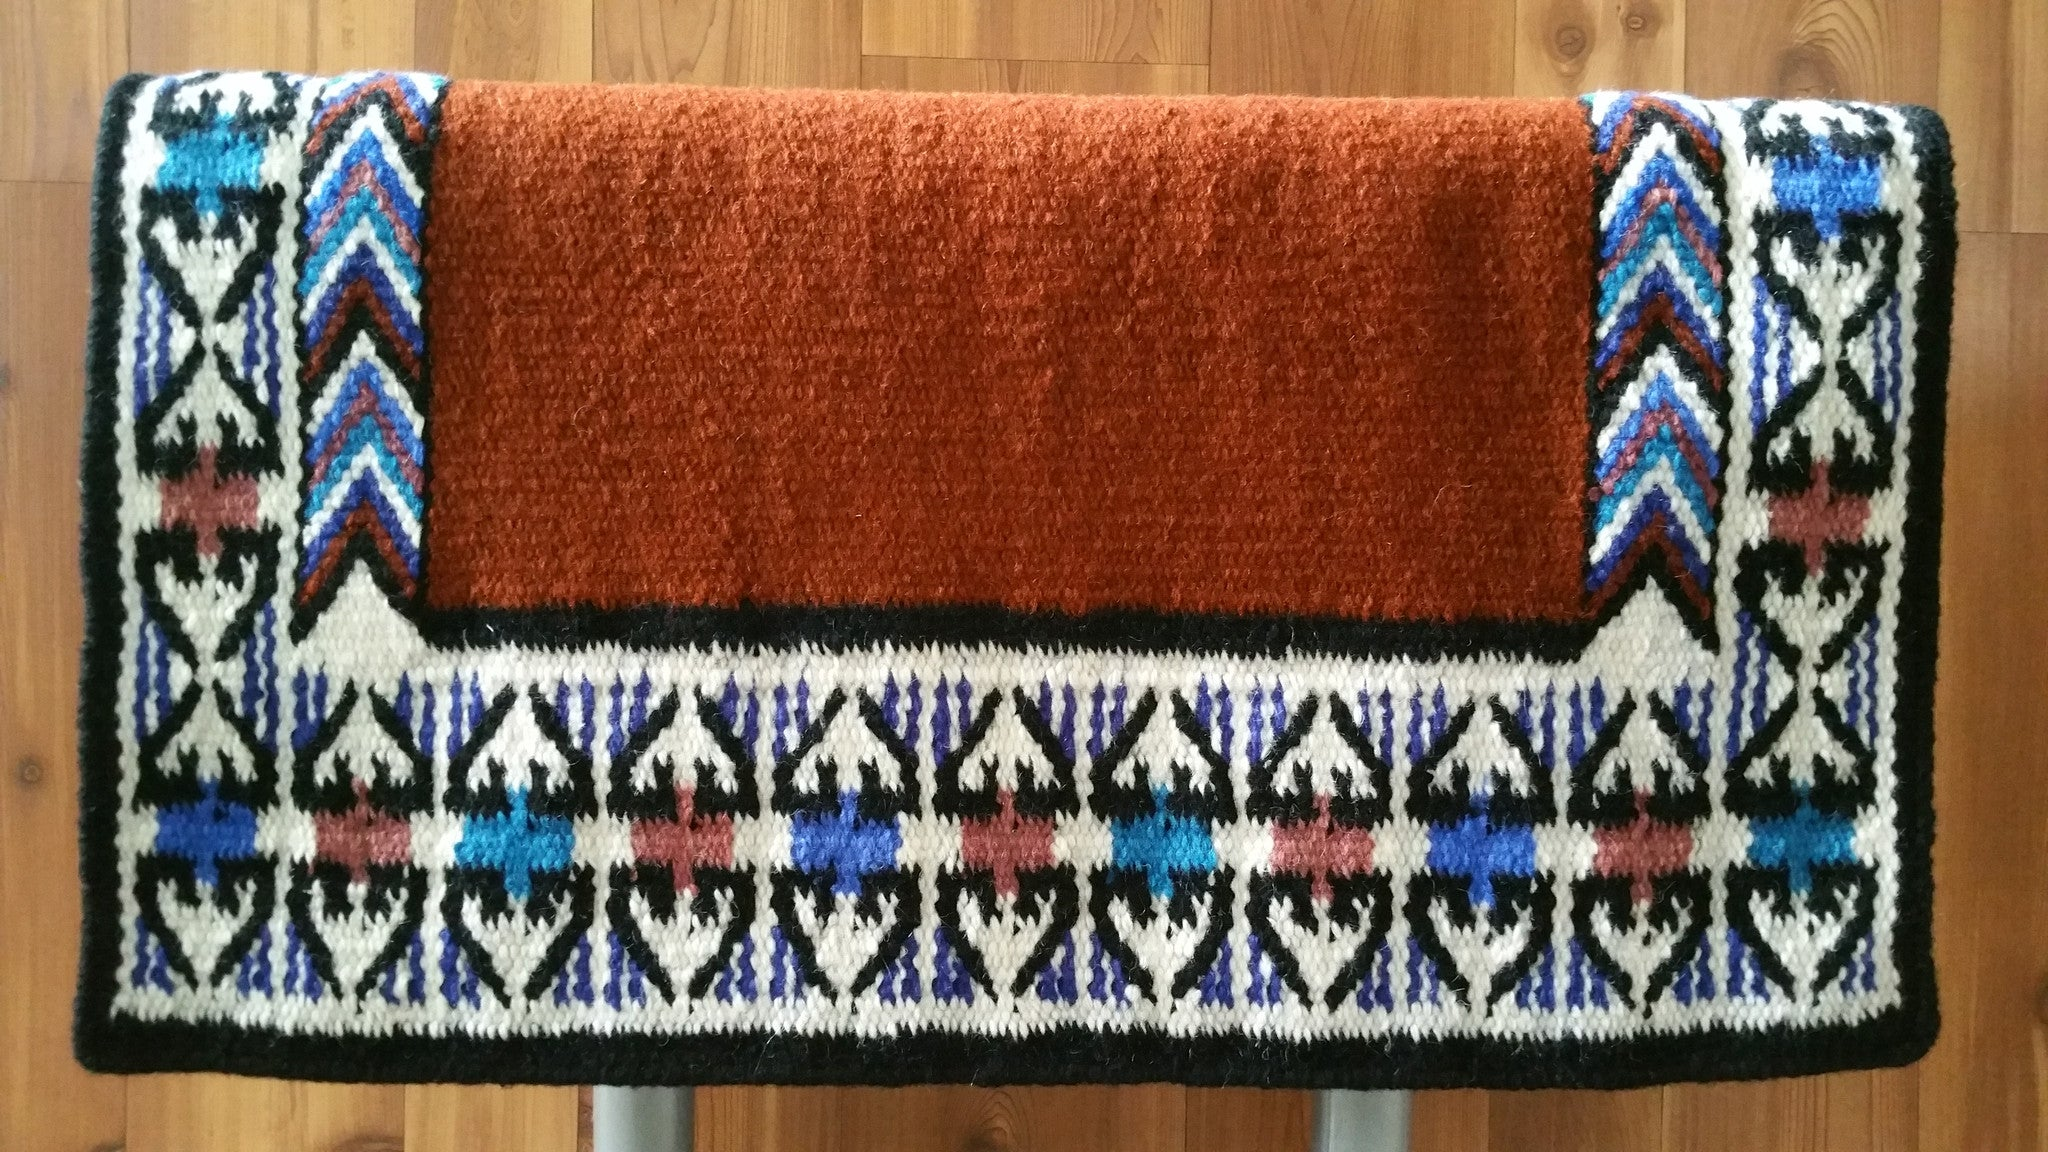 YUCCA FLATS G36A BLANKET - Heck Of A Lope